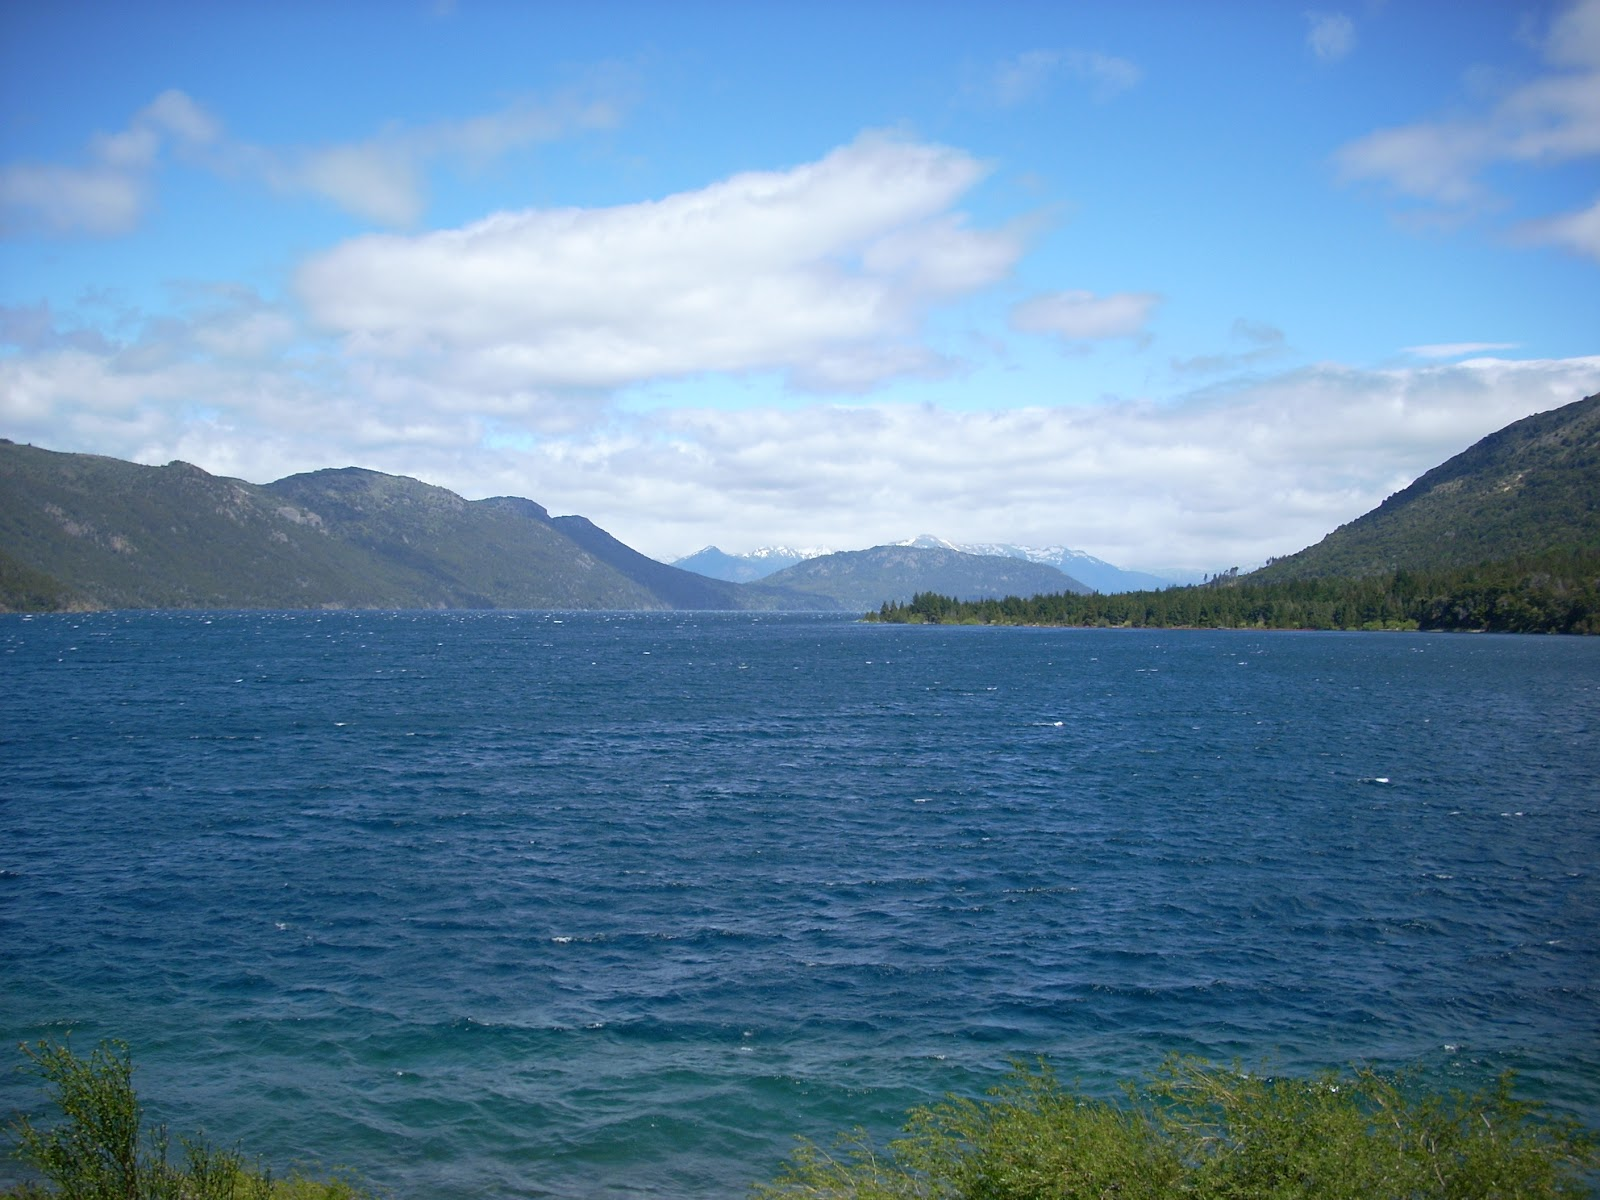 Clear(ish) skies again, on the road to Bariloche